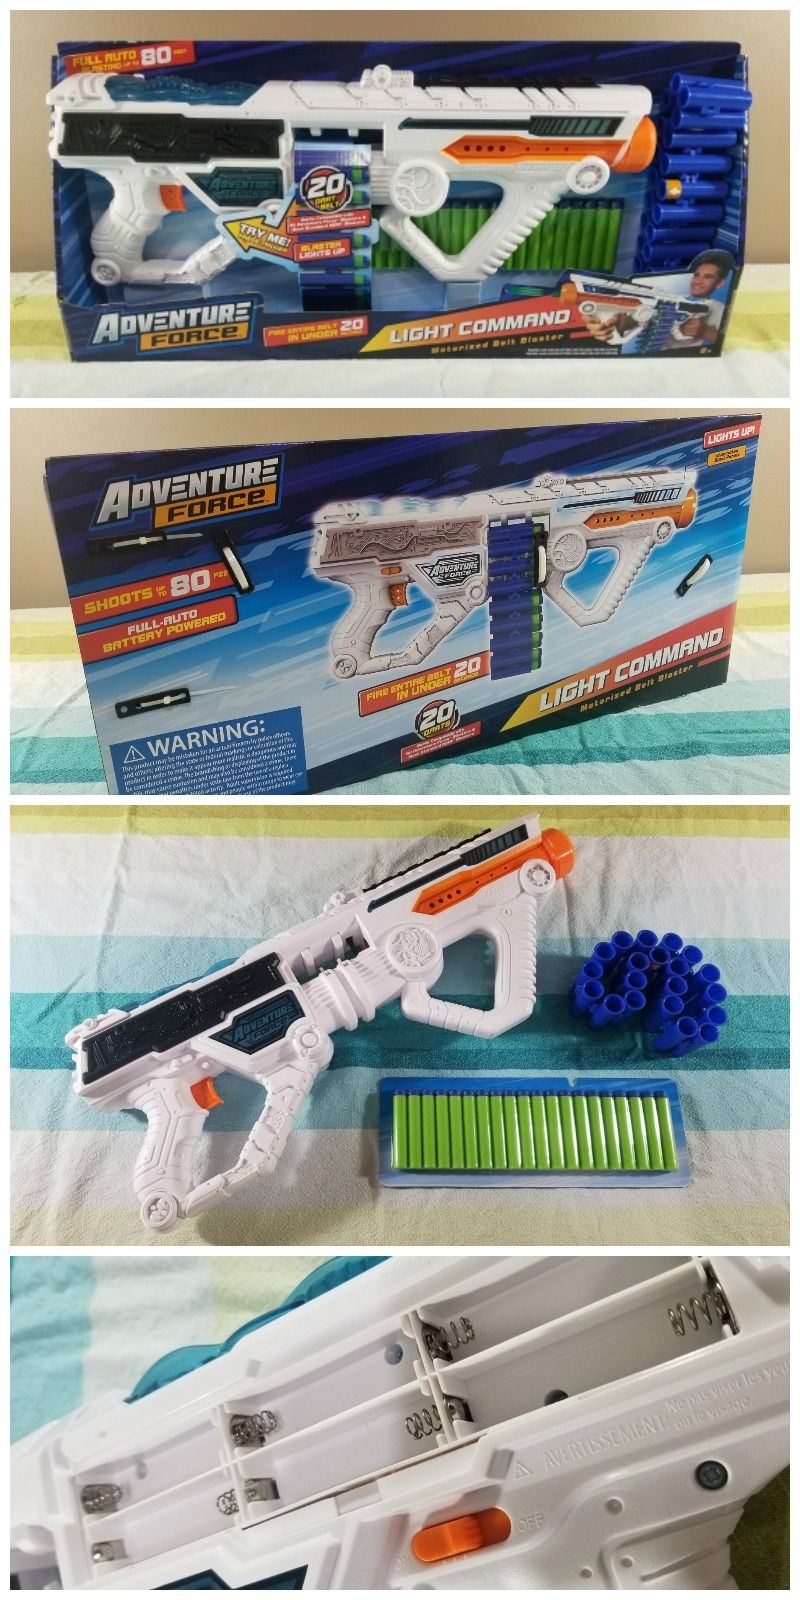 Adventure Force Light Command Motorized Light-Up Blaster #HotHolidayGifts2017